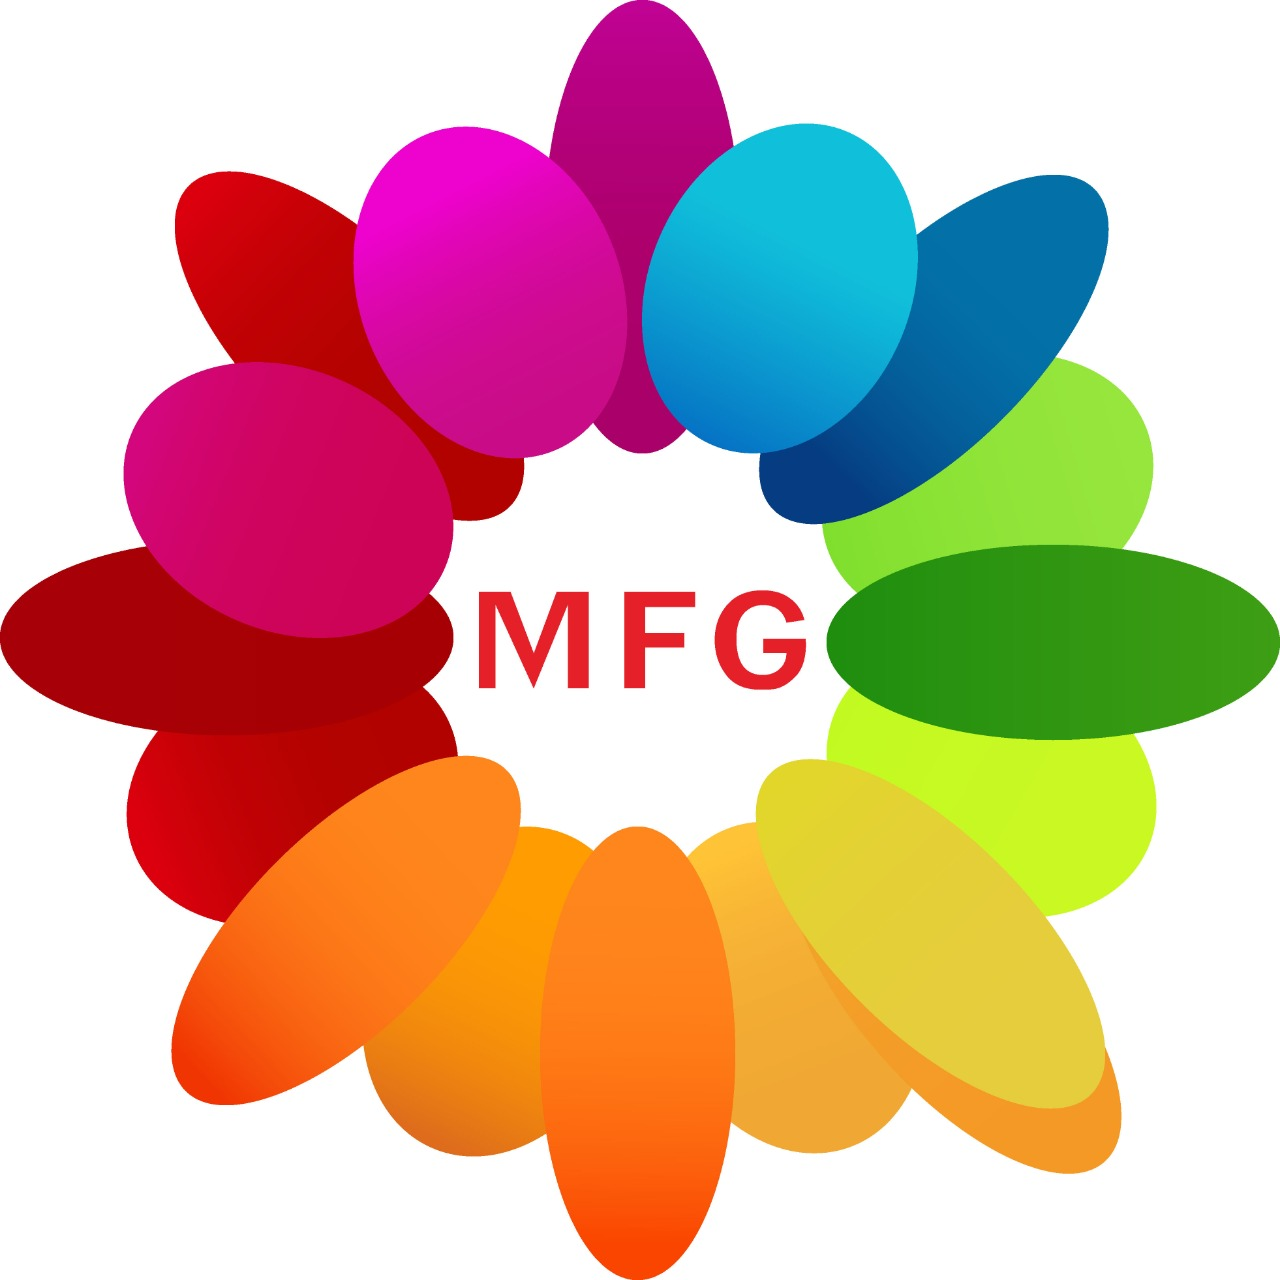 Exotic big bunch of 50 Red roses , cute teddybear sitting in basket of assorted chocolates, with greeting card